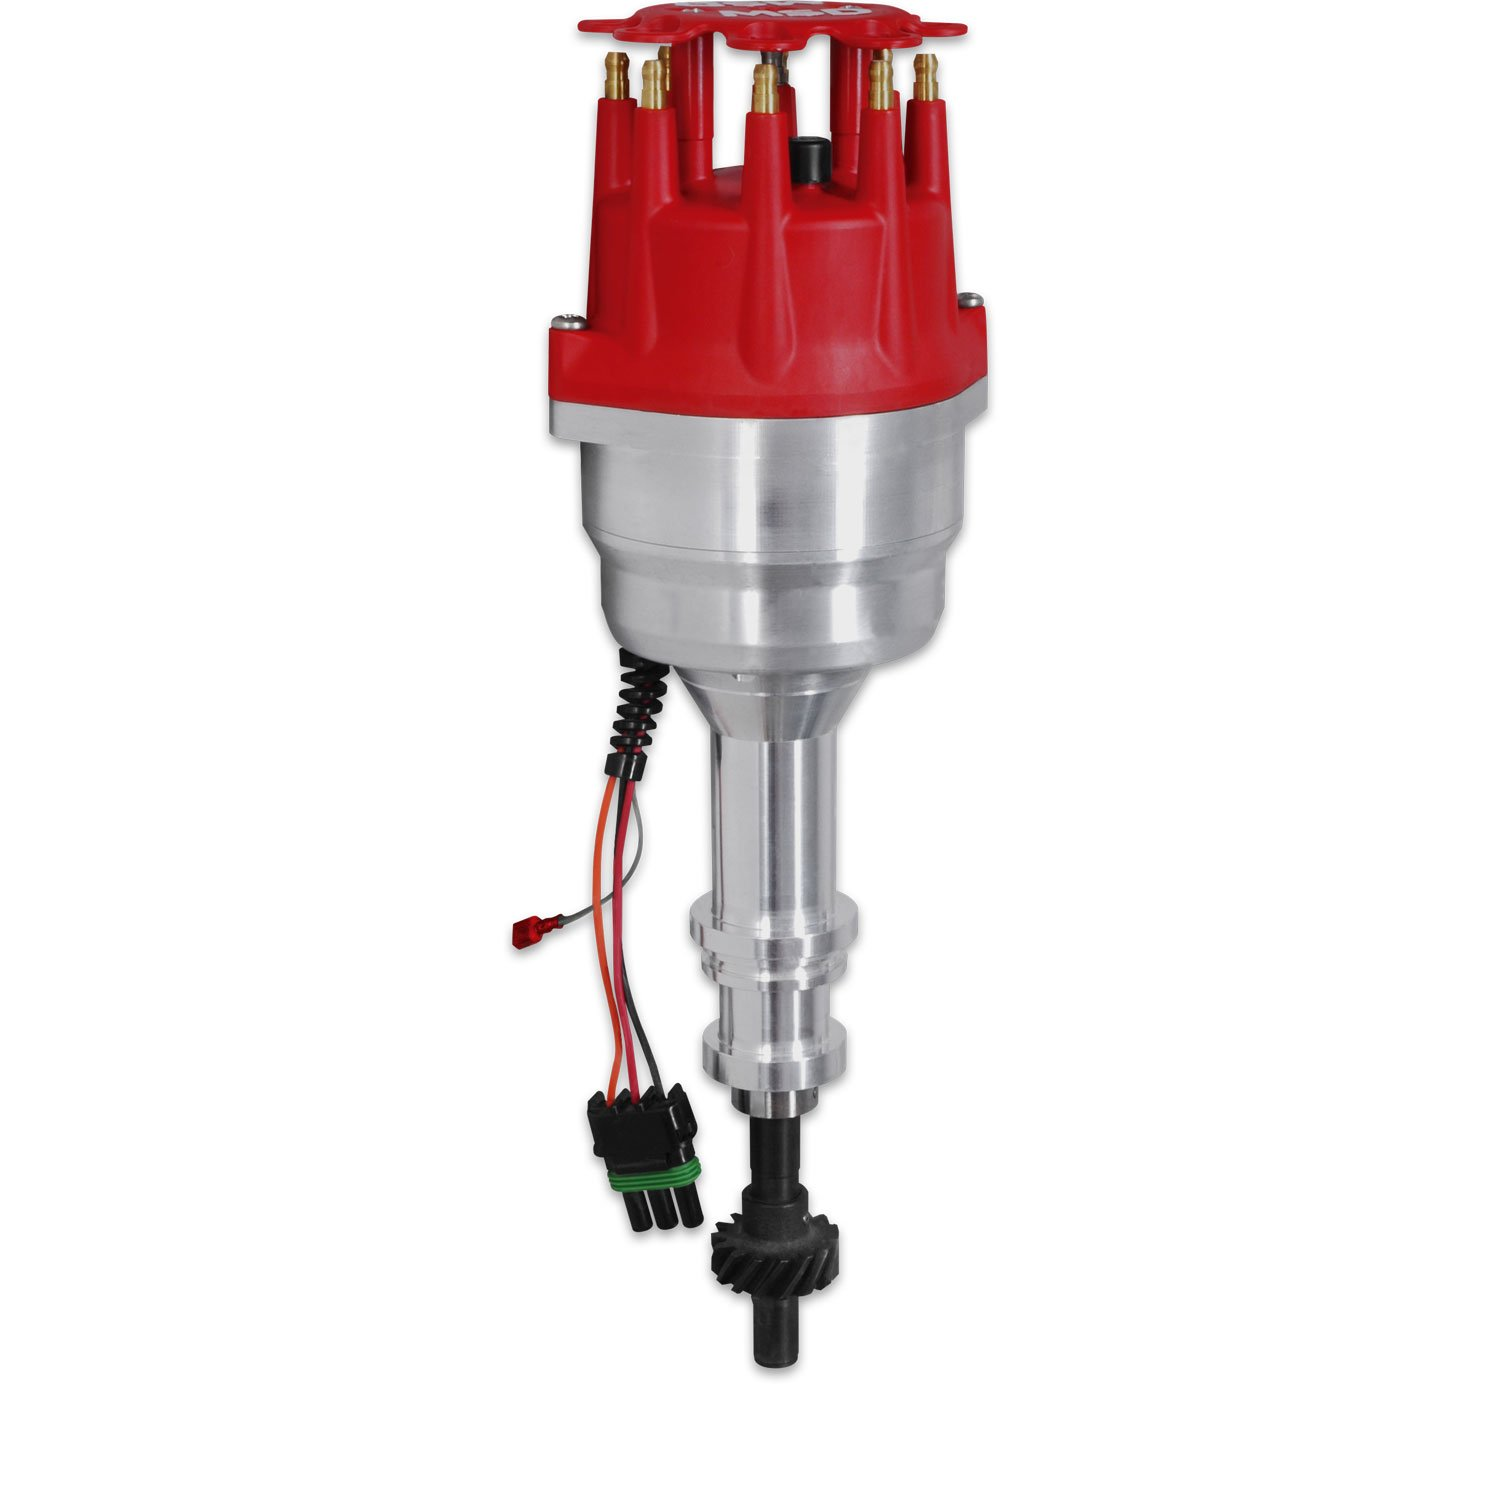 83506 - Ford 351-460 Ready-to-Run Marine Distributor Image